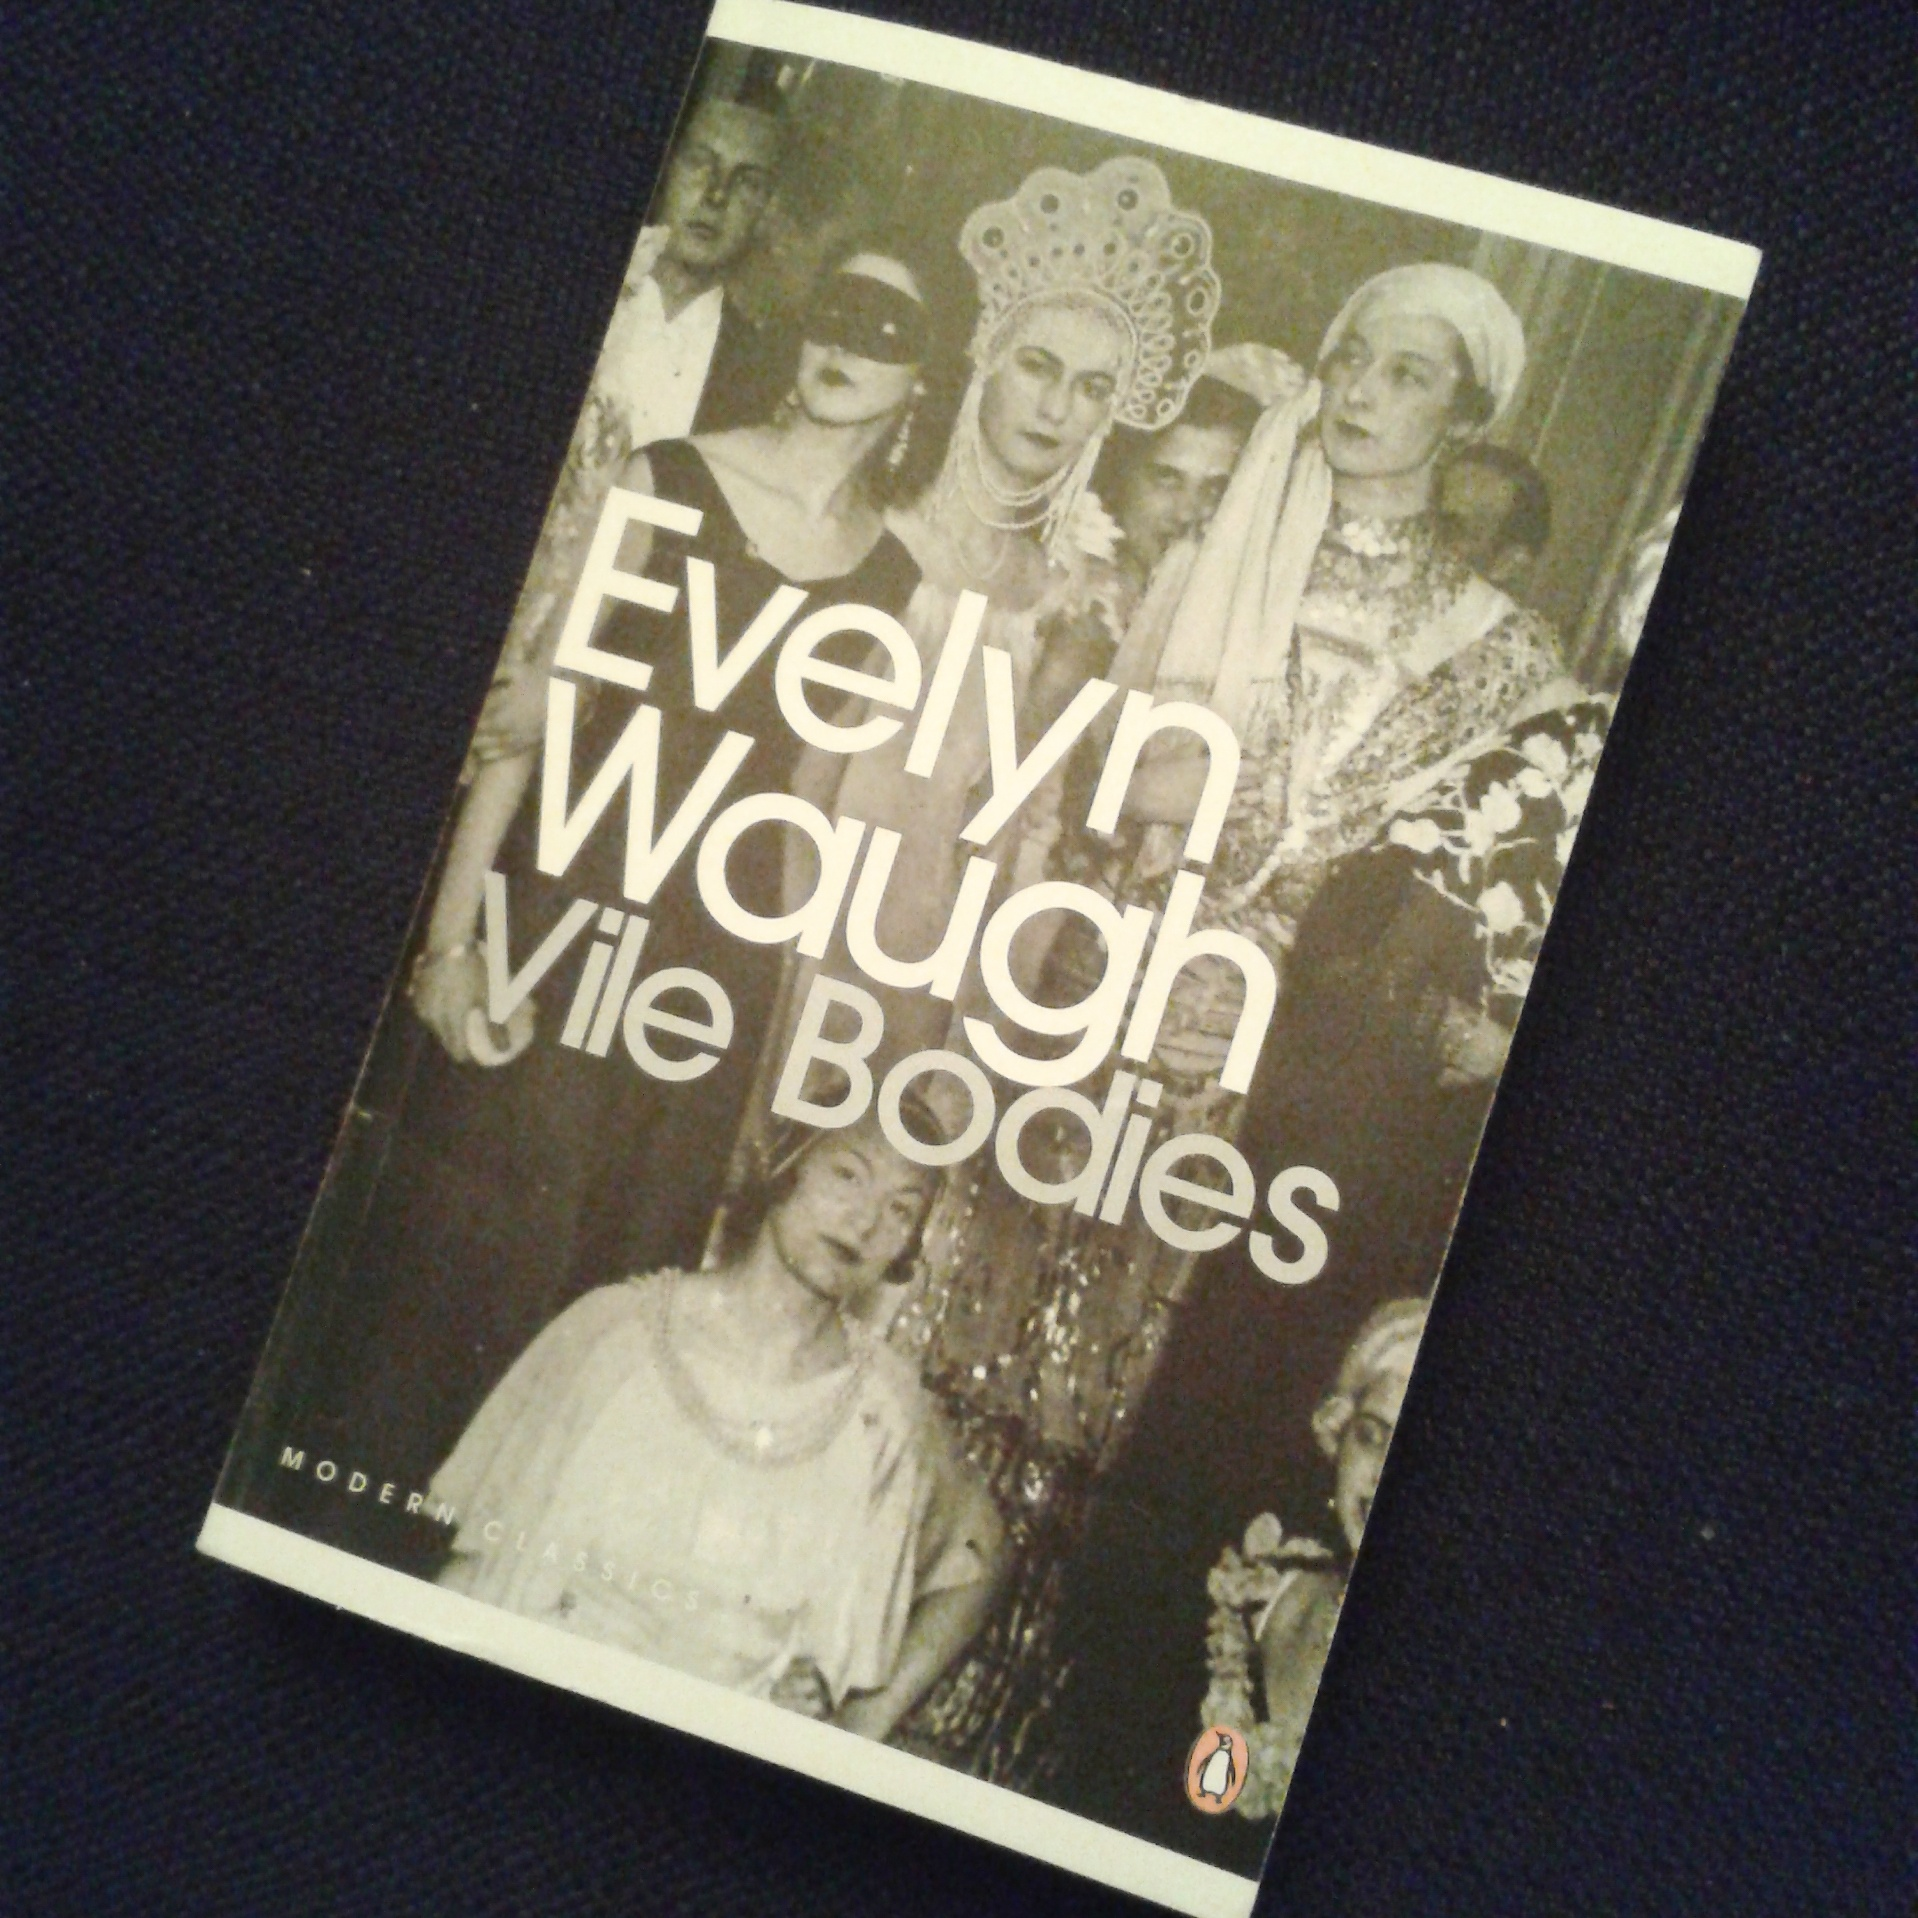 Das war #vilereaders – Vile Bodies von Evelyn Waugh